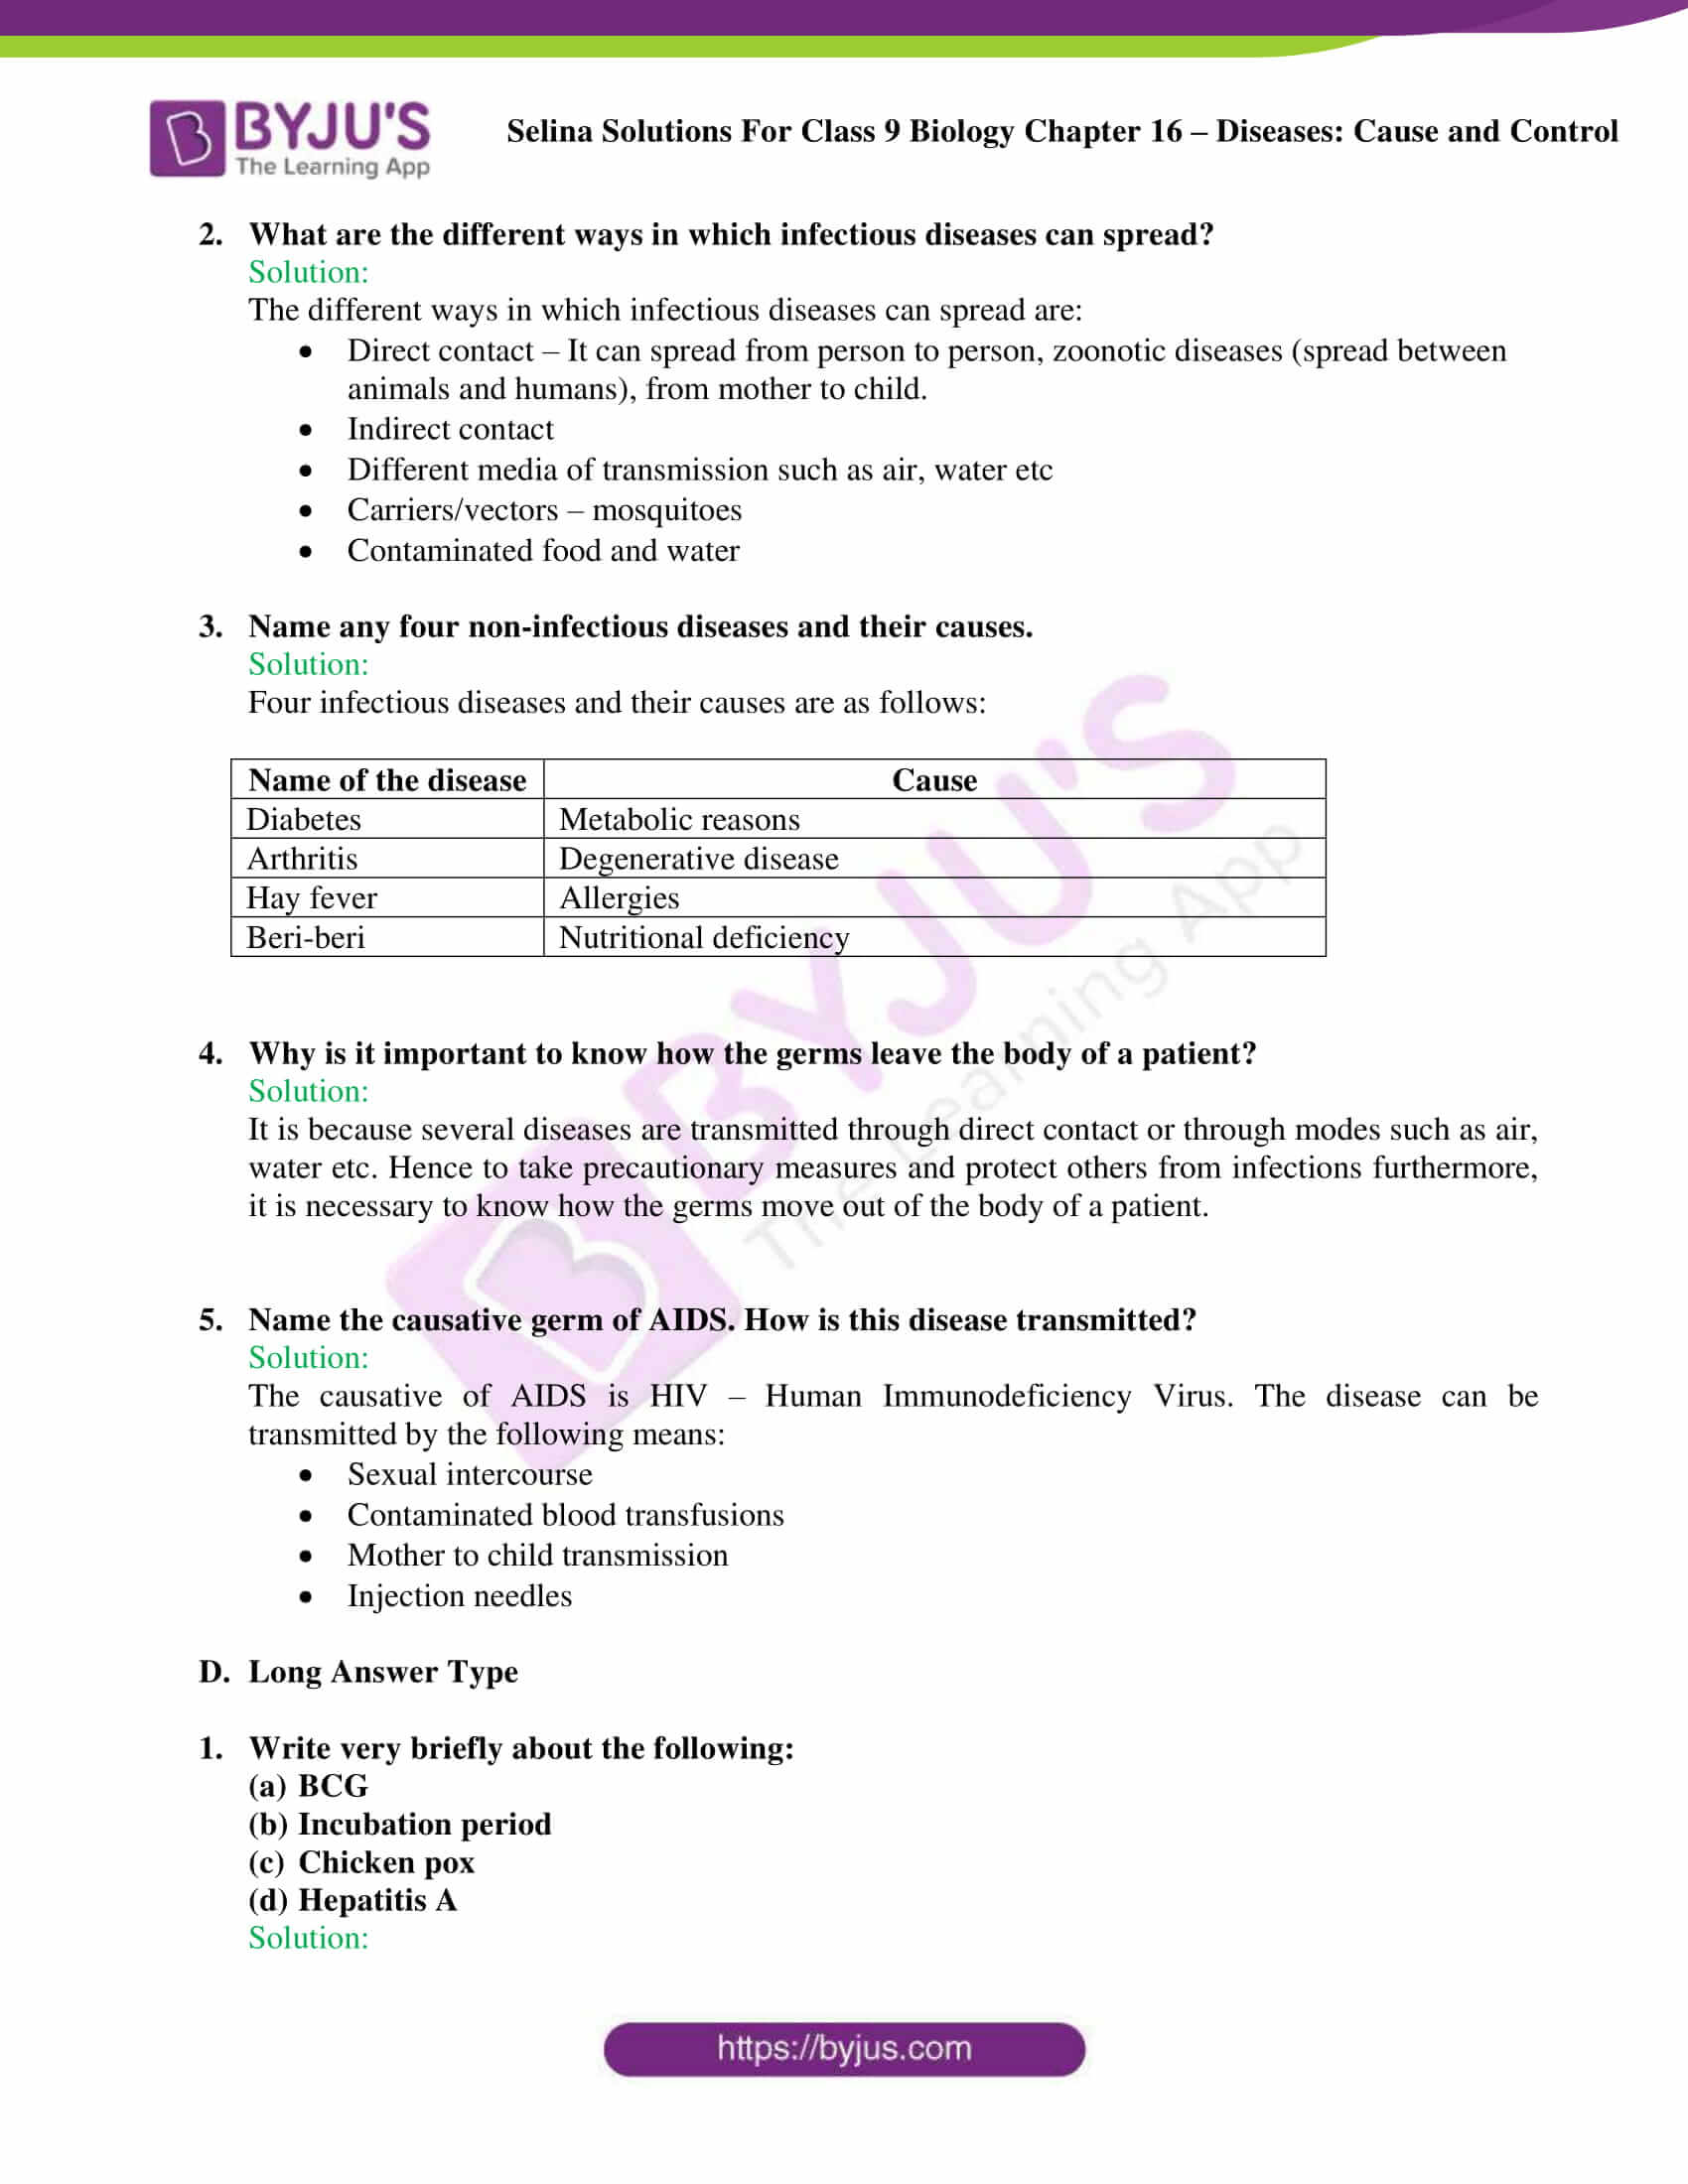 Selina Solutions Class 9 Biology Chapter 16 part 5